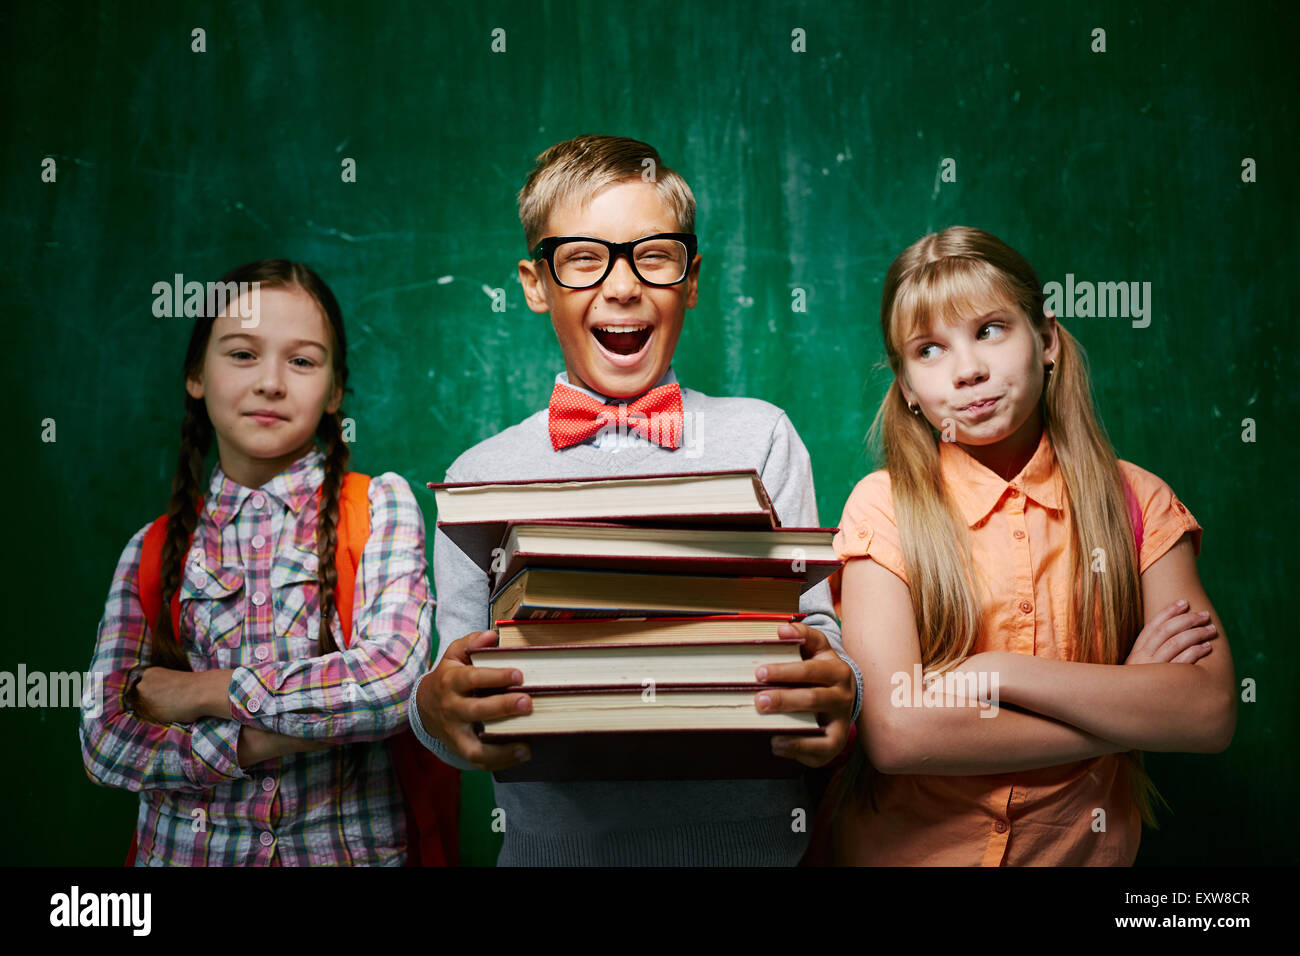 Ecstatic pupil with books standing between two schoolmates - Stock Image